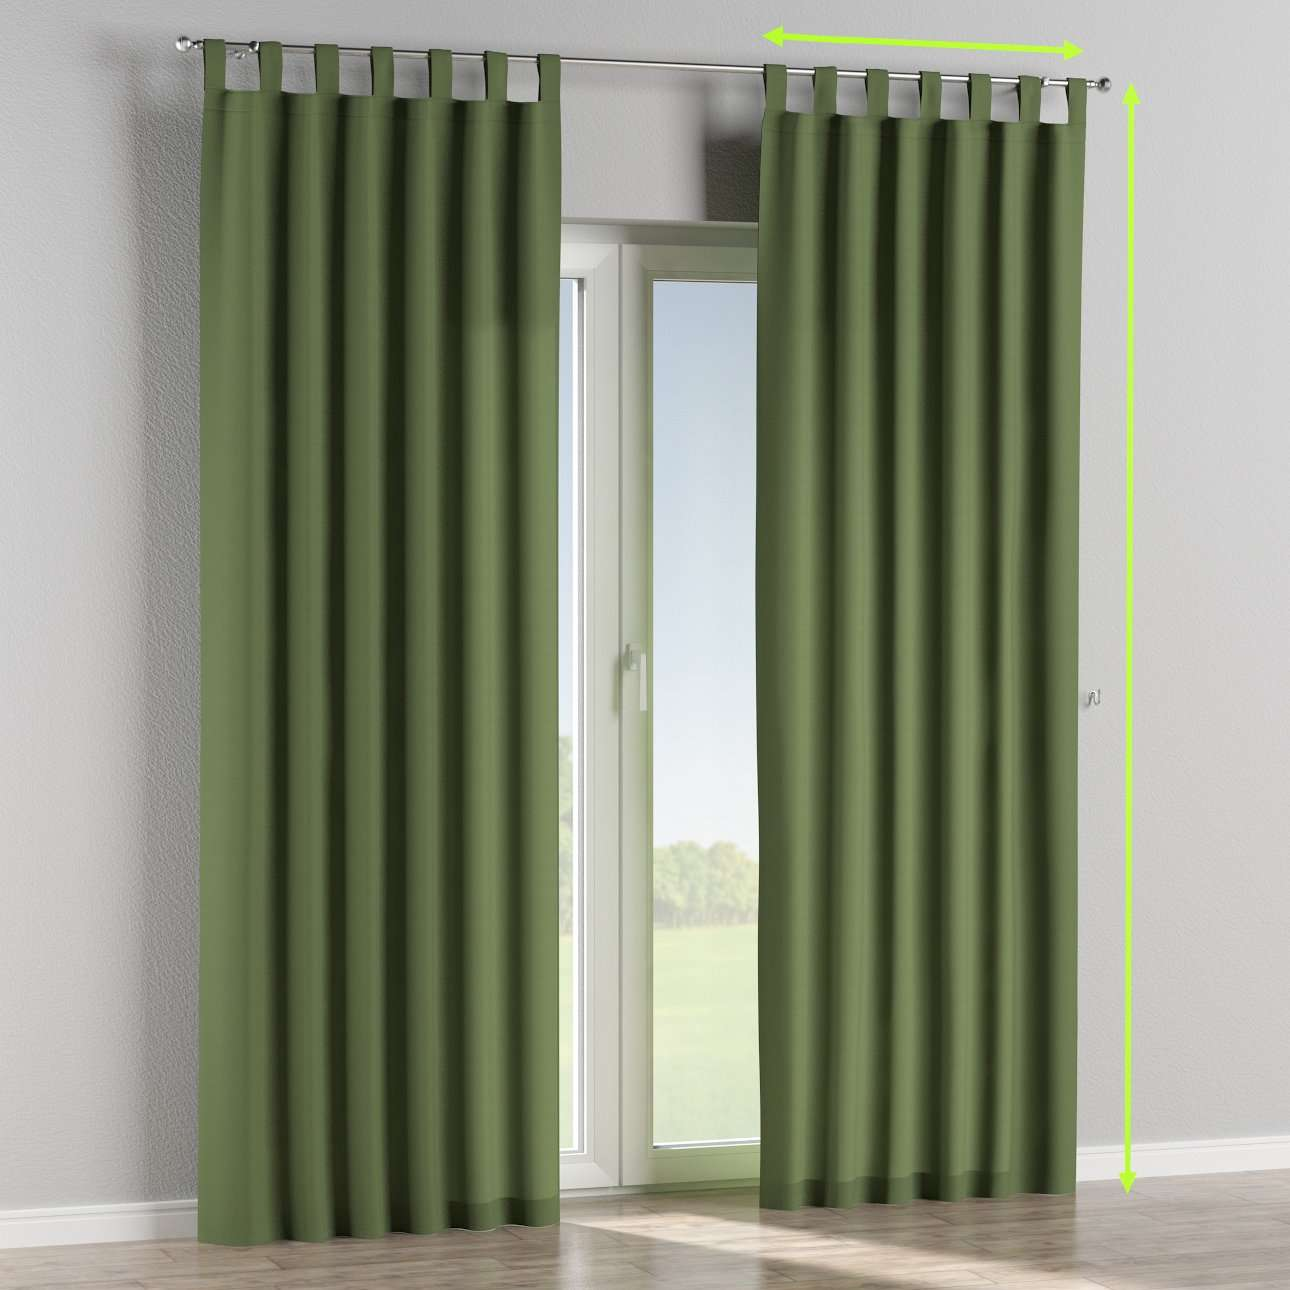 Tab top lined curtains in collection Cotton Panama, fabric: 702-06